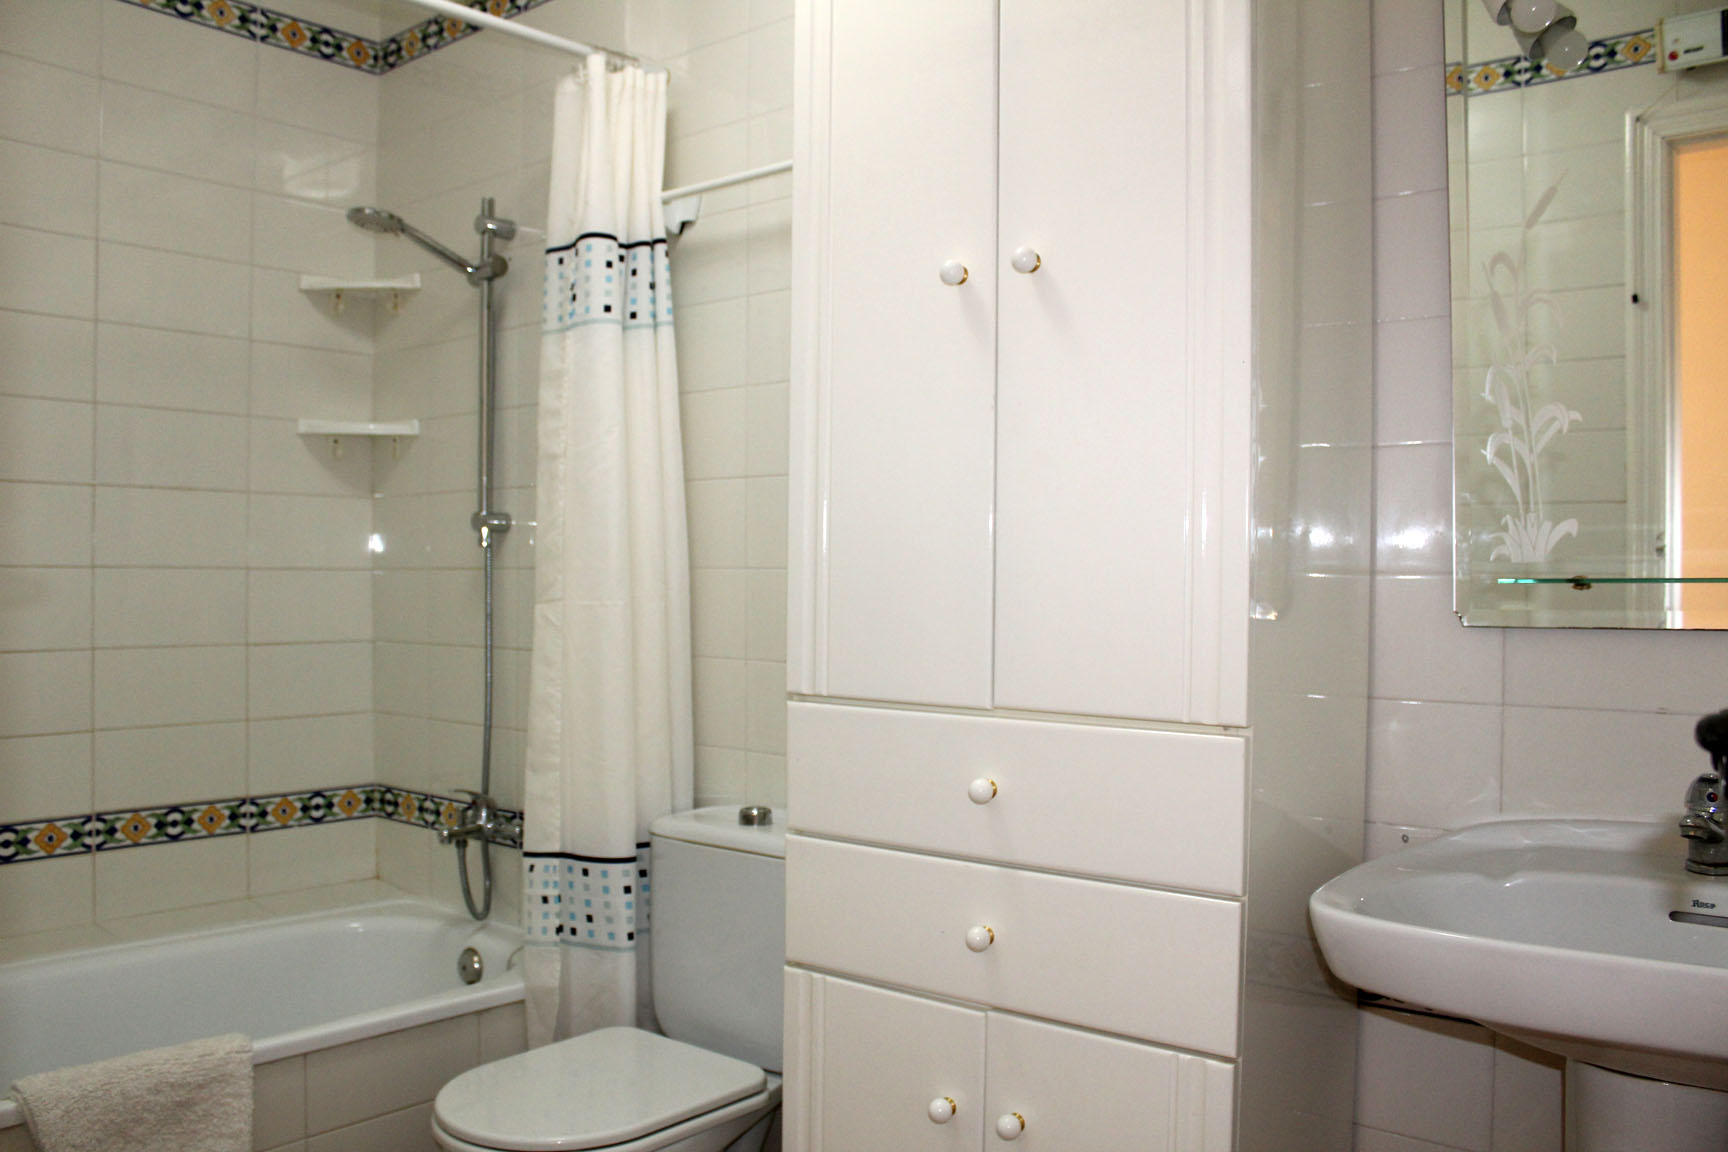 ITSH Property Full family style bathroom 9